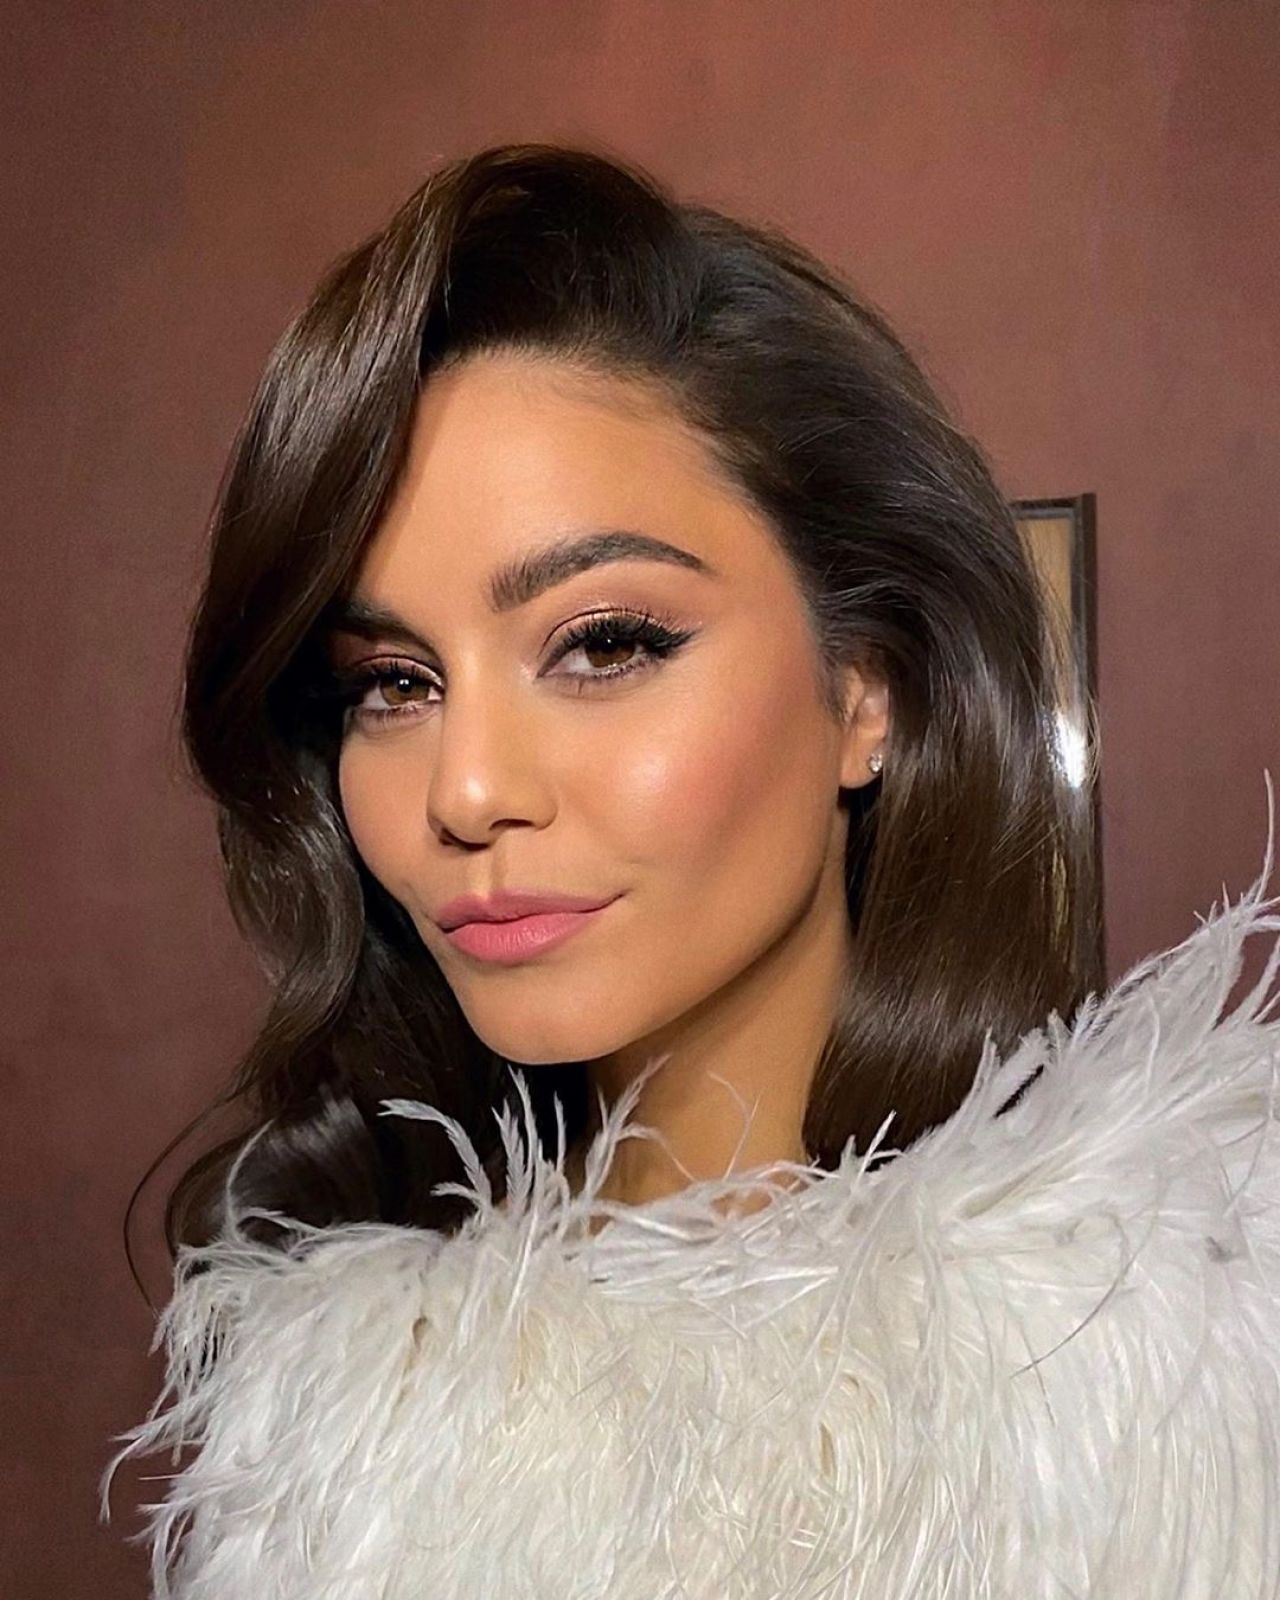 Vanessa Hudgens gorgeous selfies and sexy video. She is so so fucking hot